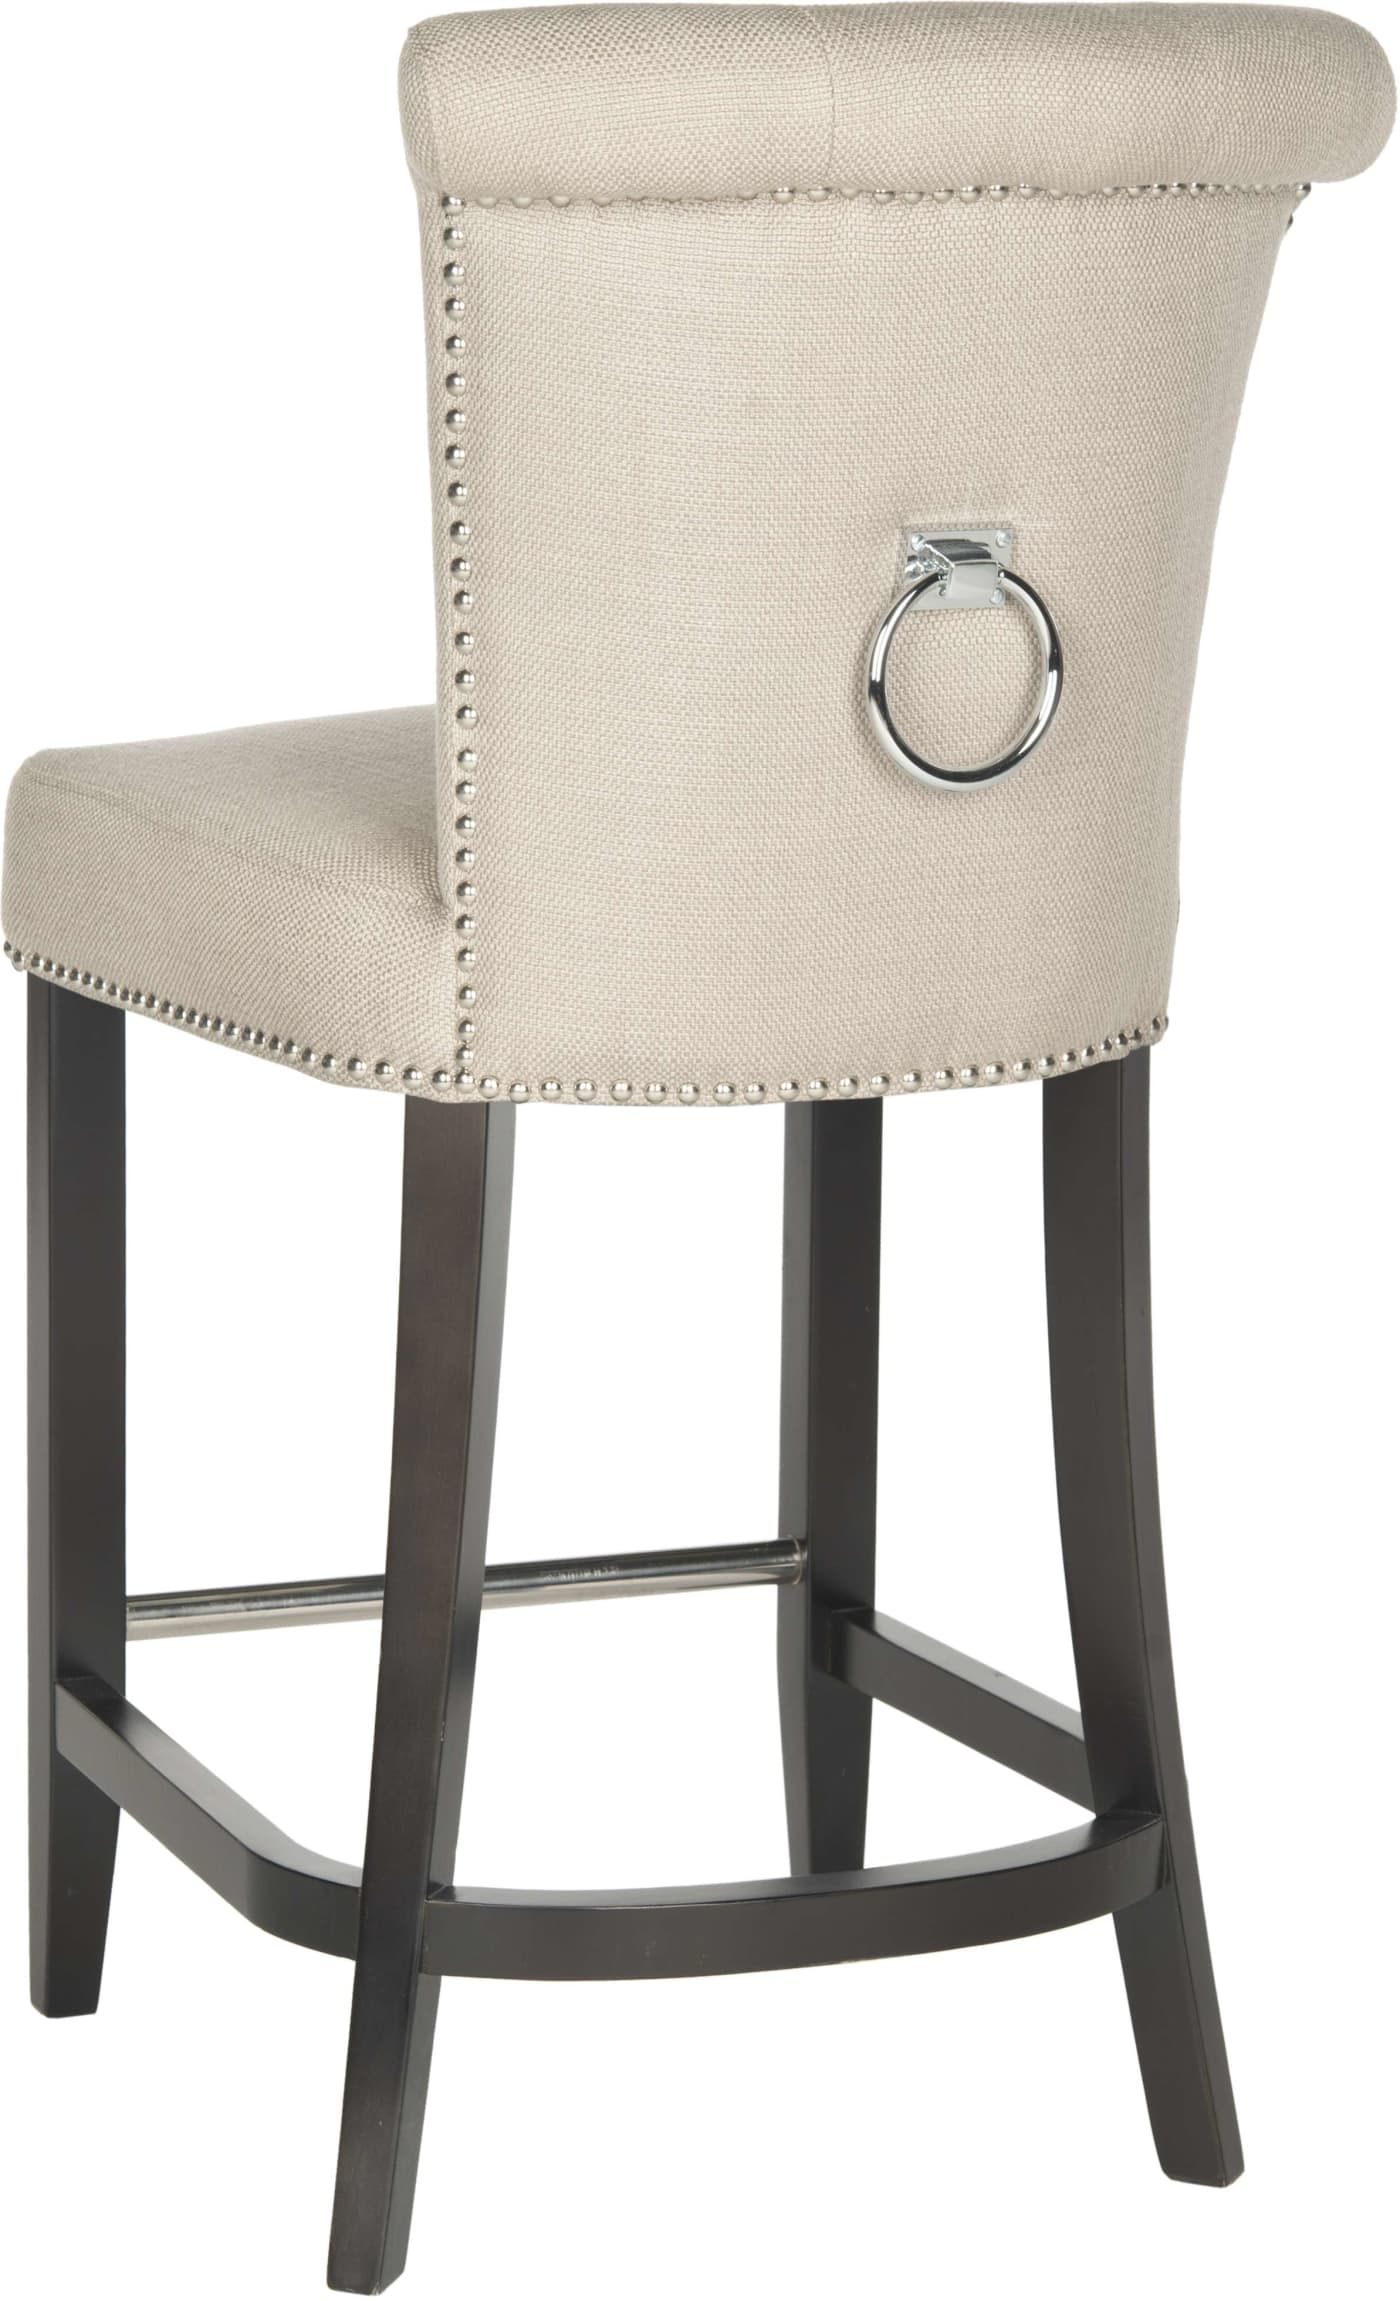 Safavieh Addo Ring Biscuit Beige Counter Stool Amp Reviews